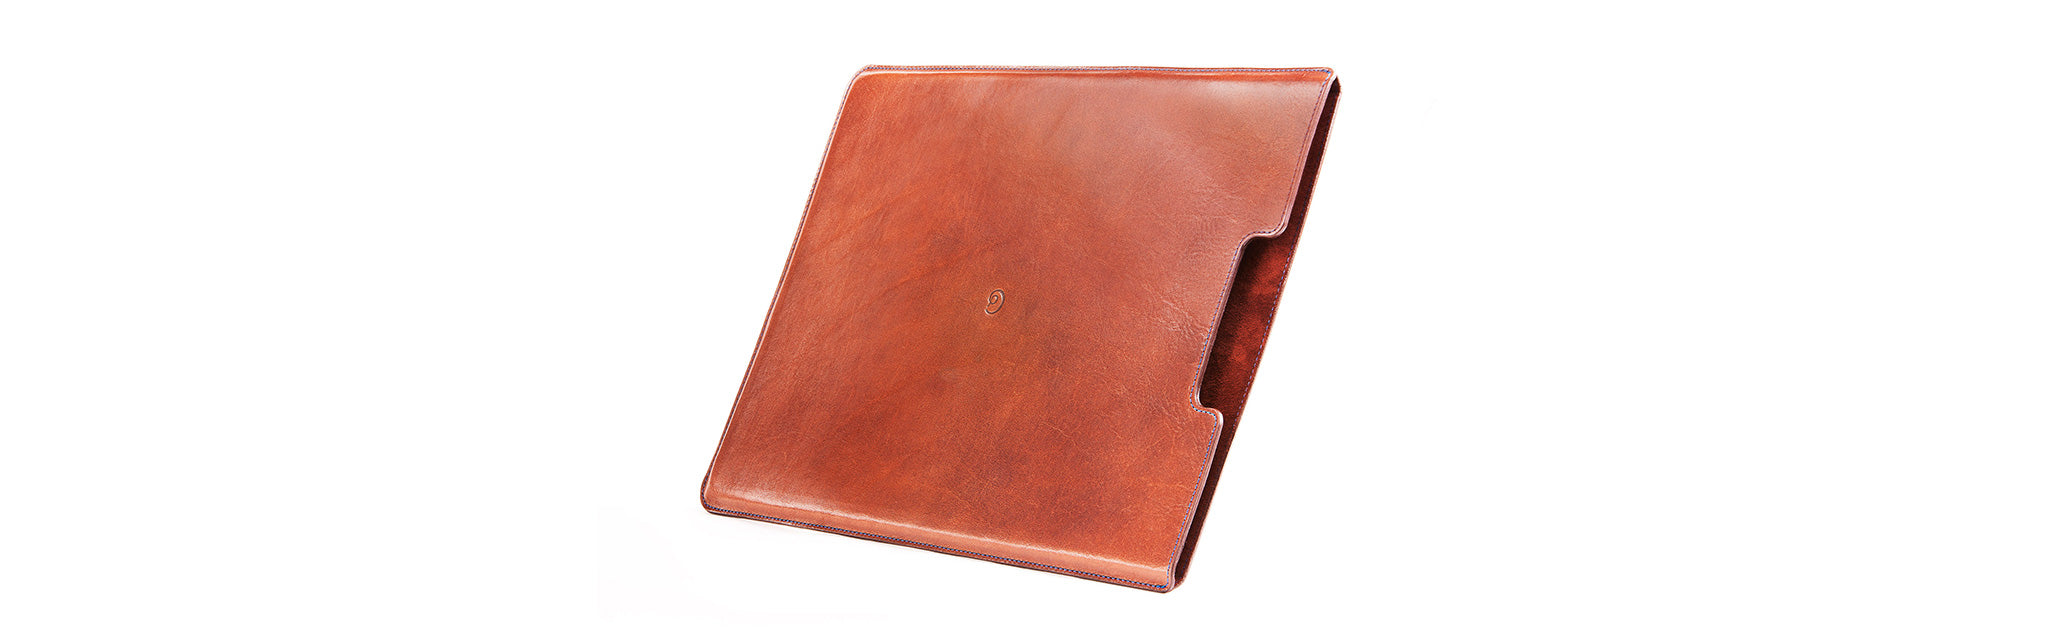 Leather sleeve in dark brown